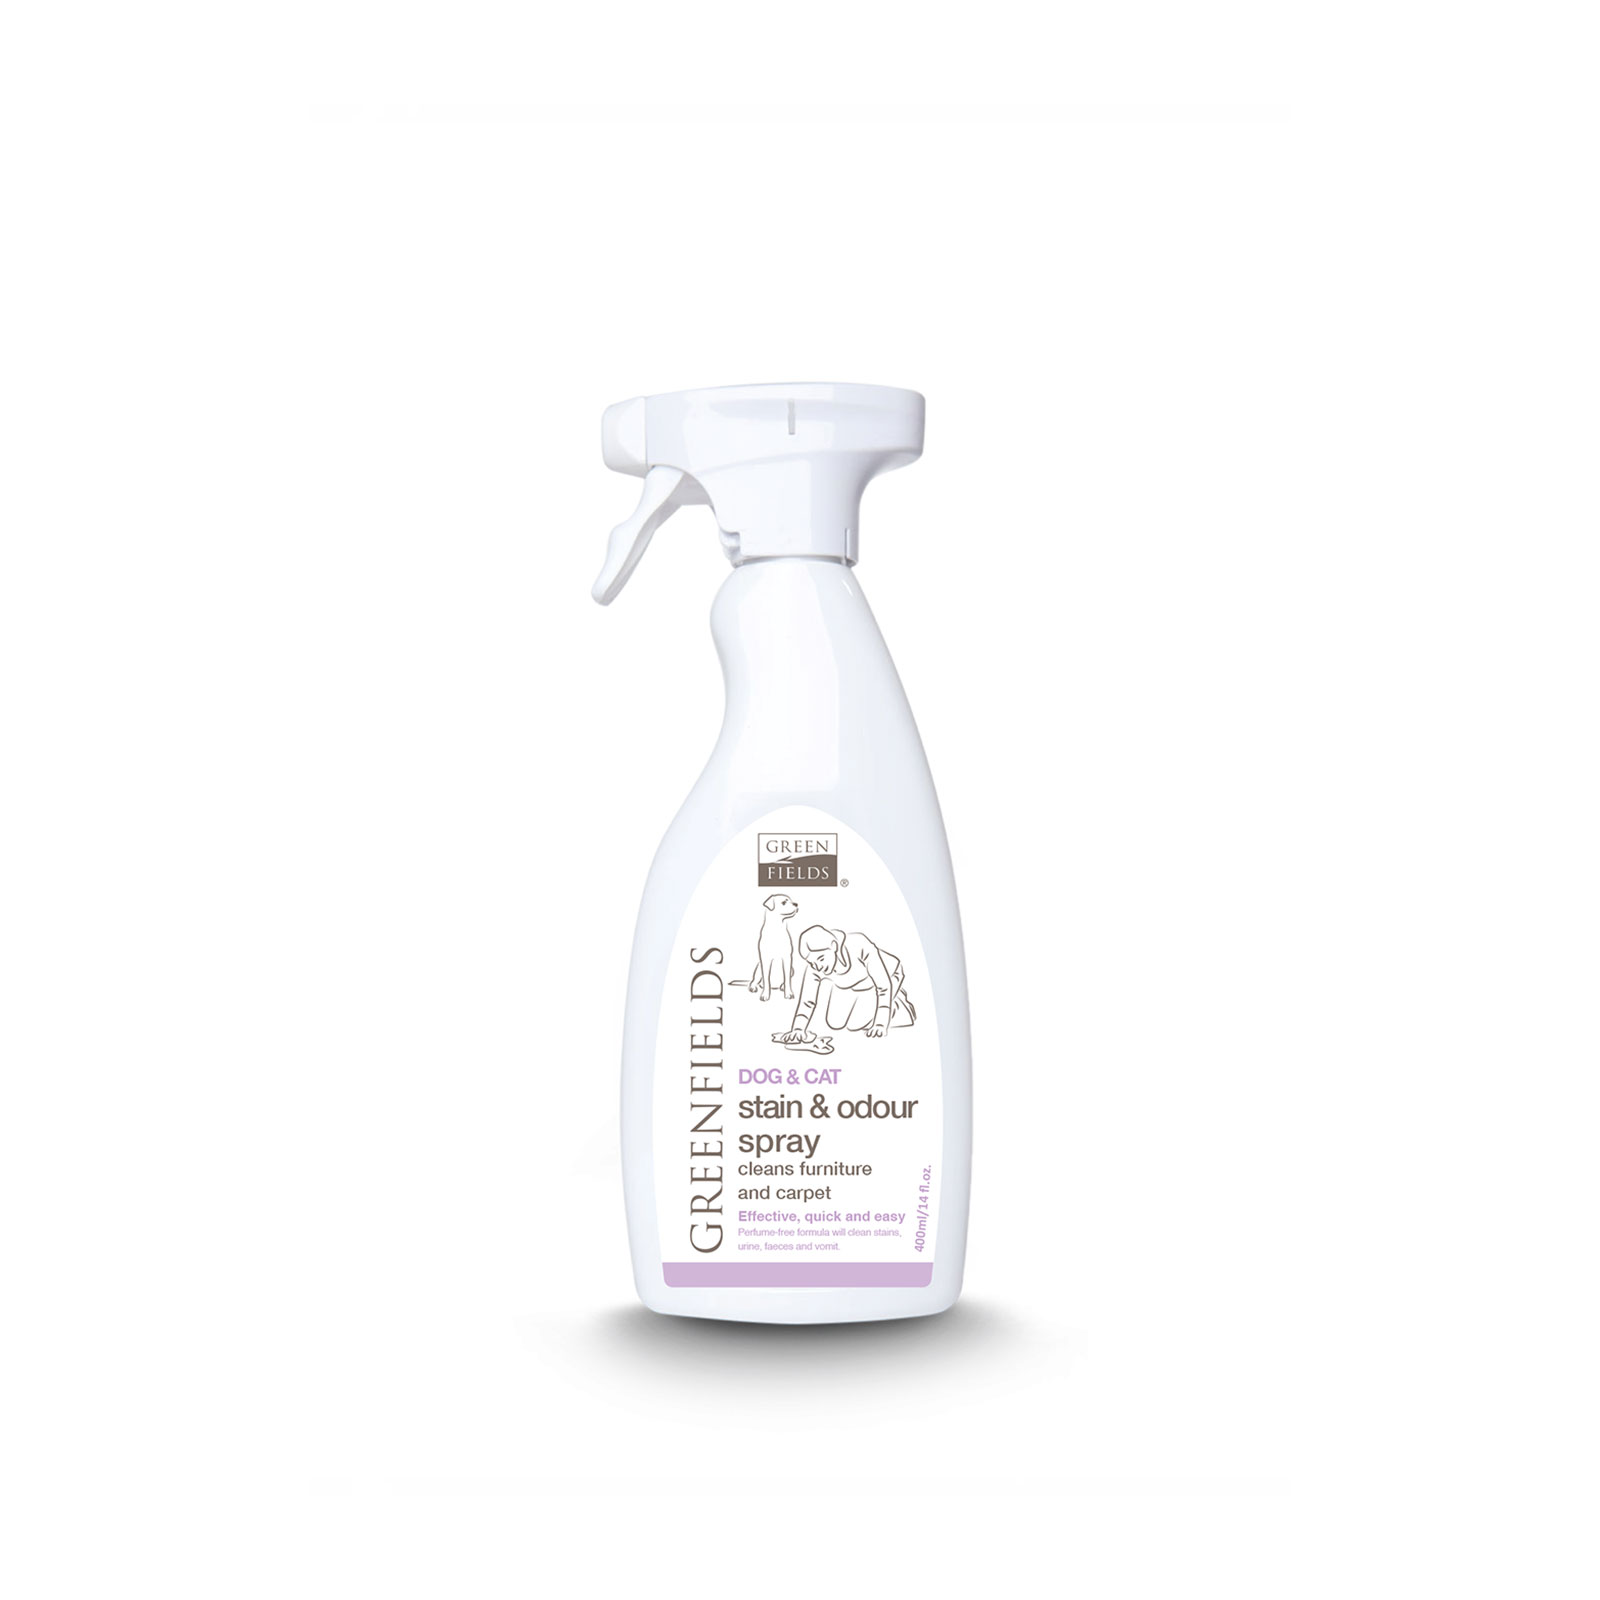 Greenfields - Stain and odour spray - Preparat protiv fleka I smrada